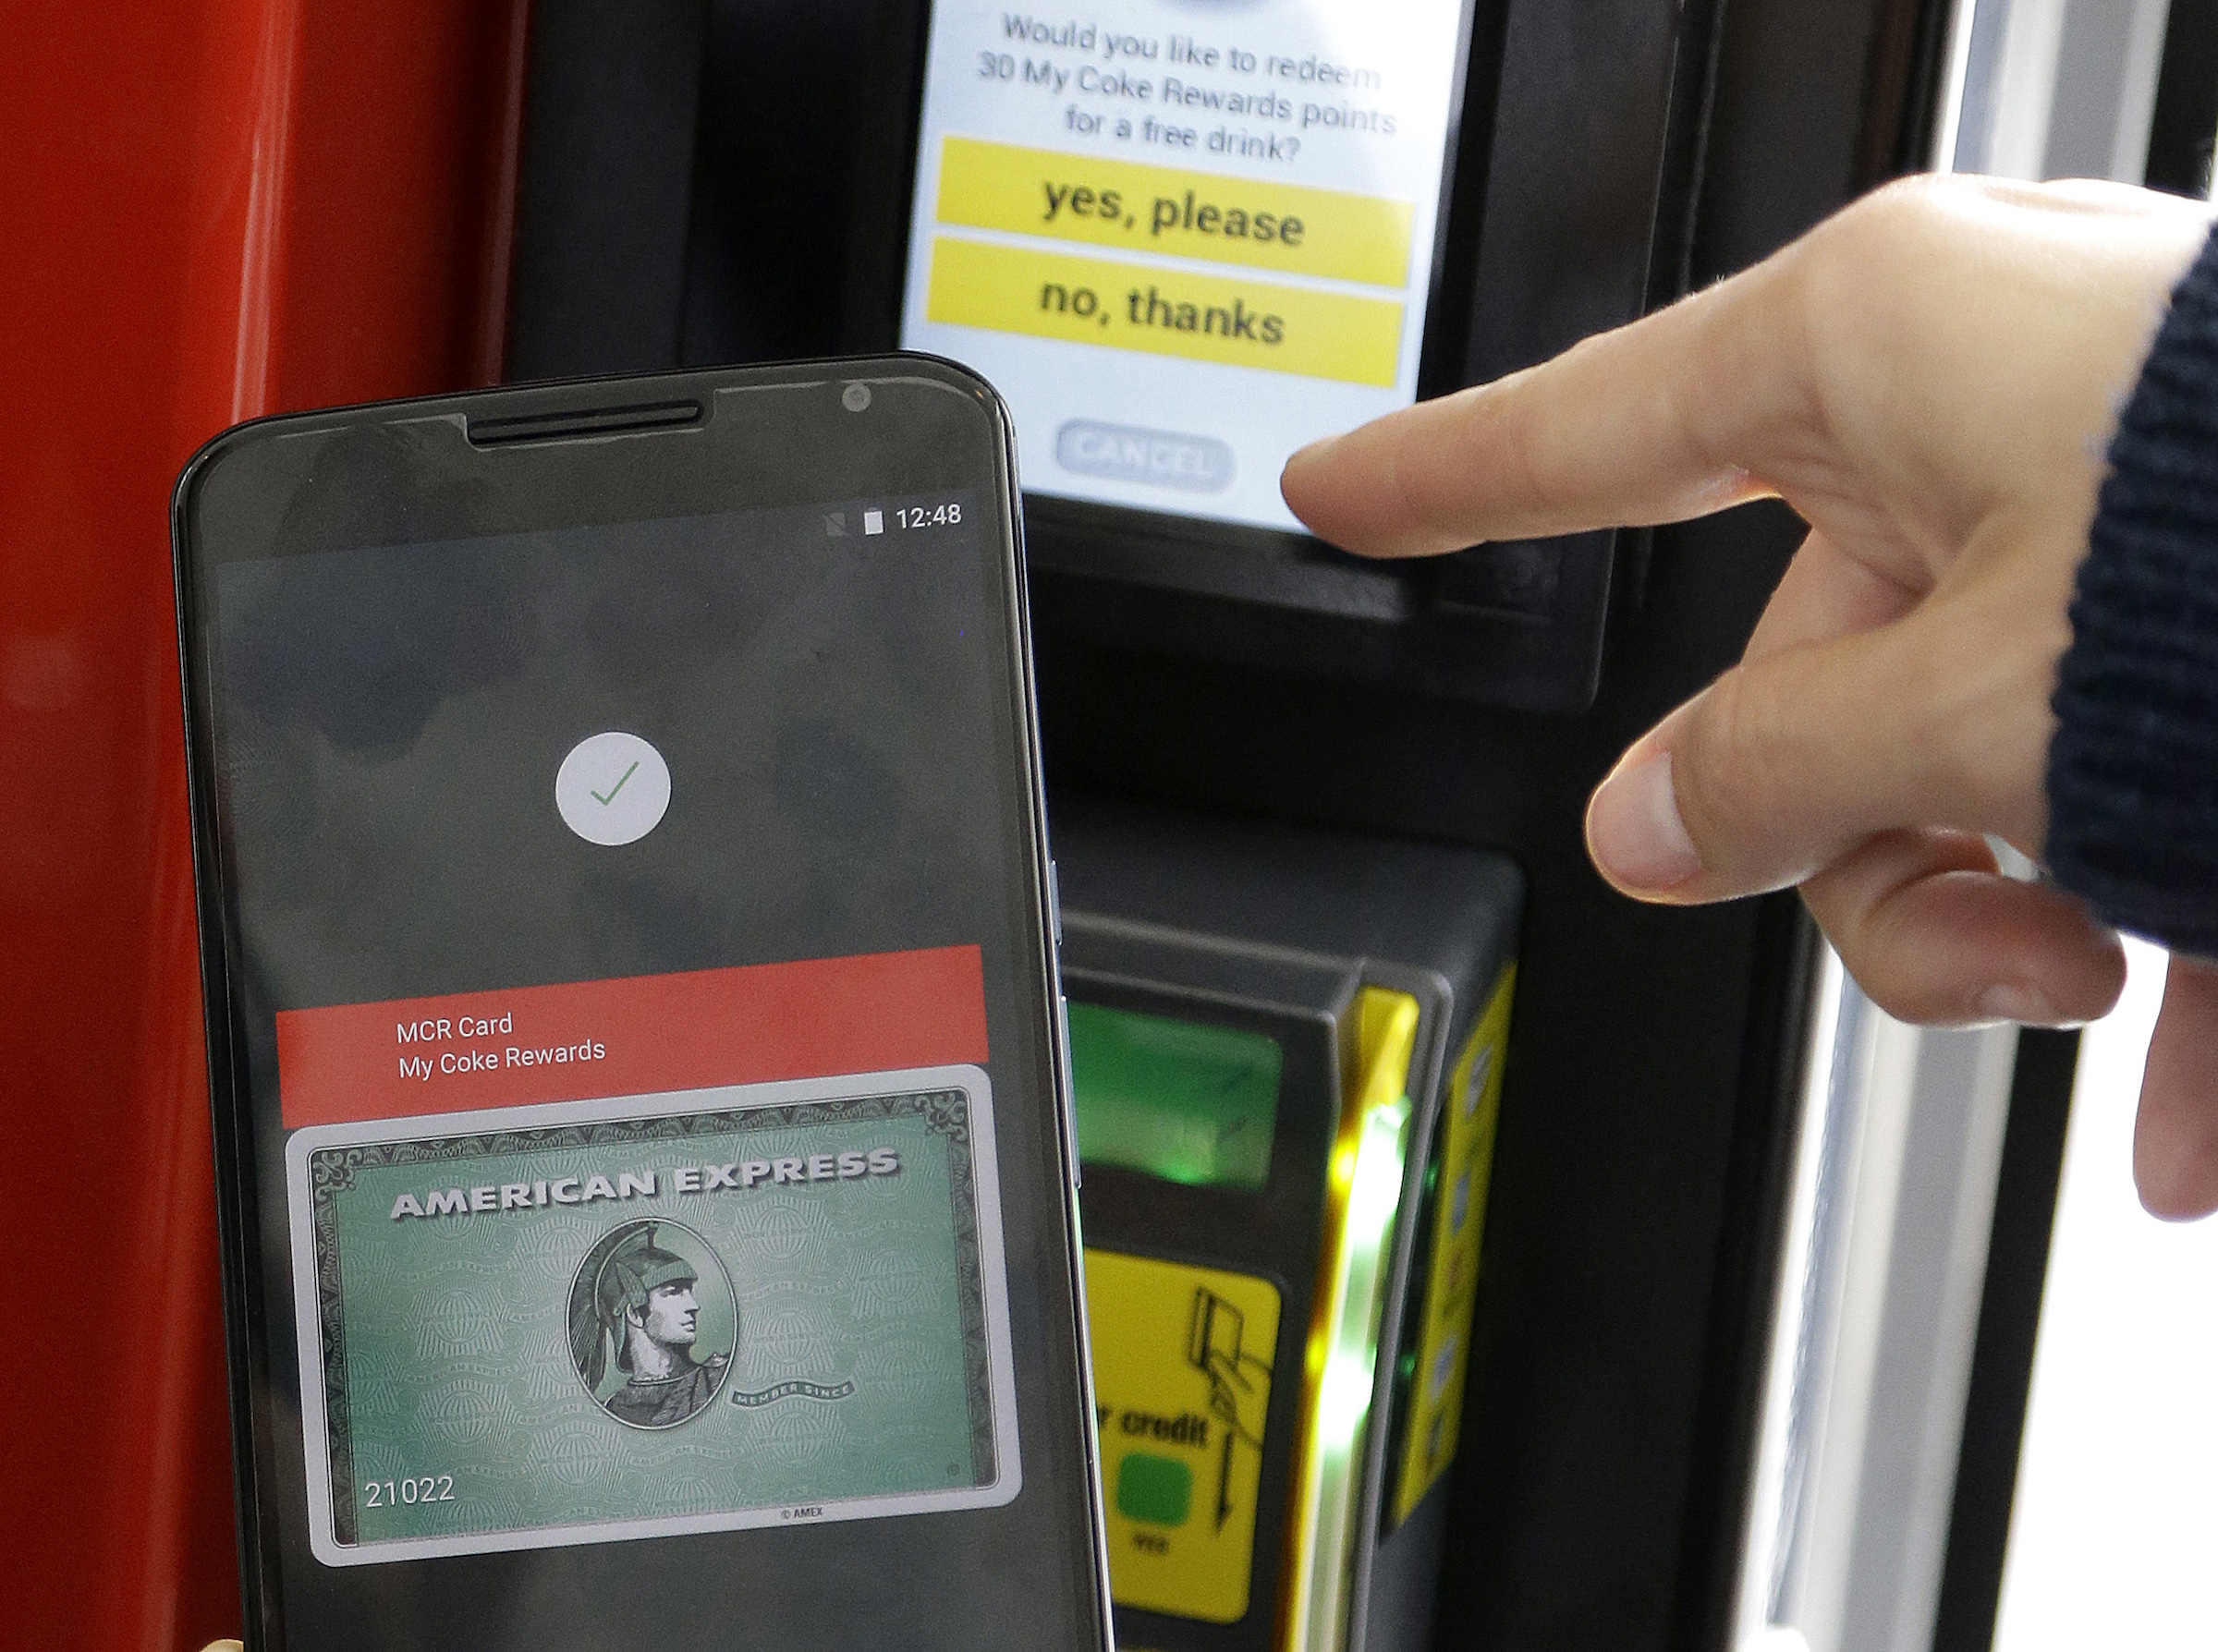 In this May 28, 2015 file photo, a Google employee gives a demonstration of Android Pay on a phone at Google I/O 2015 in San Francisco. Google's next version of its Android operating system will boast new ways to fetch information, pay merchants and protect privacy on mobile devices as the Internet company duels with Apple in the quest to make their technology indispensable.